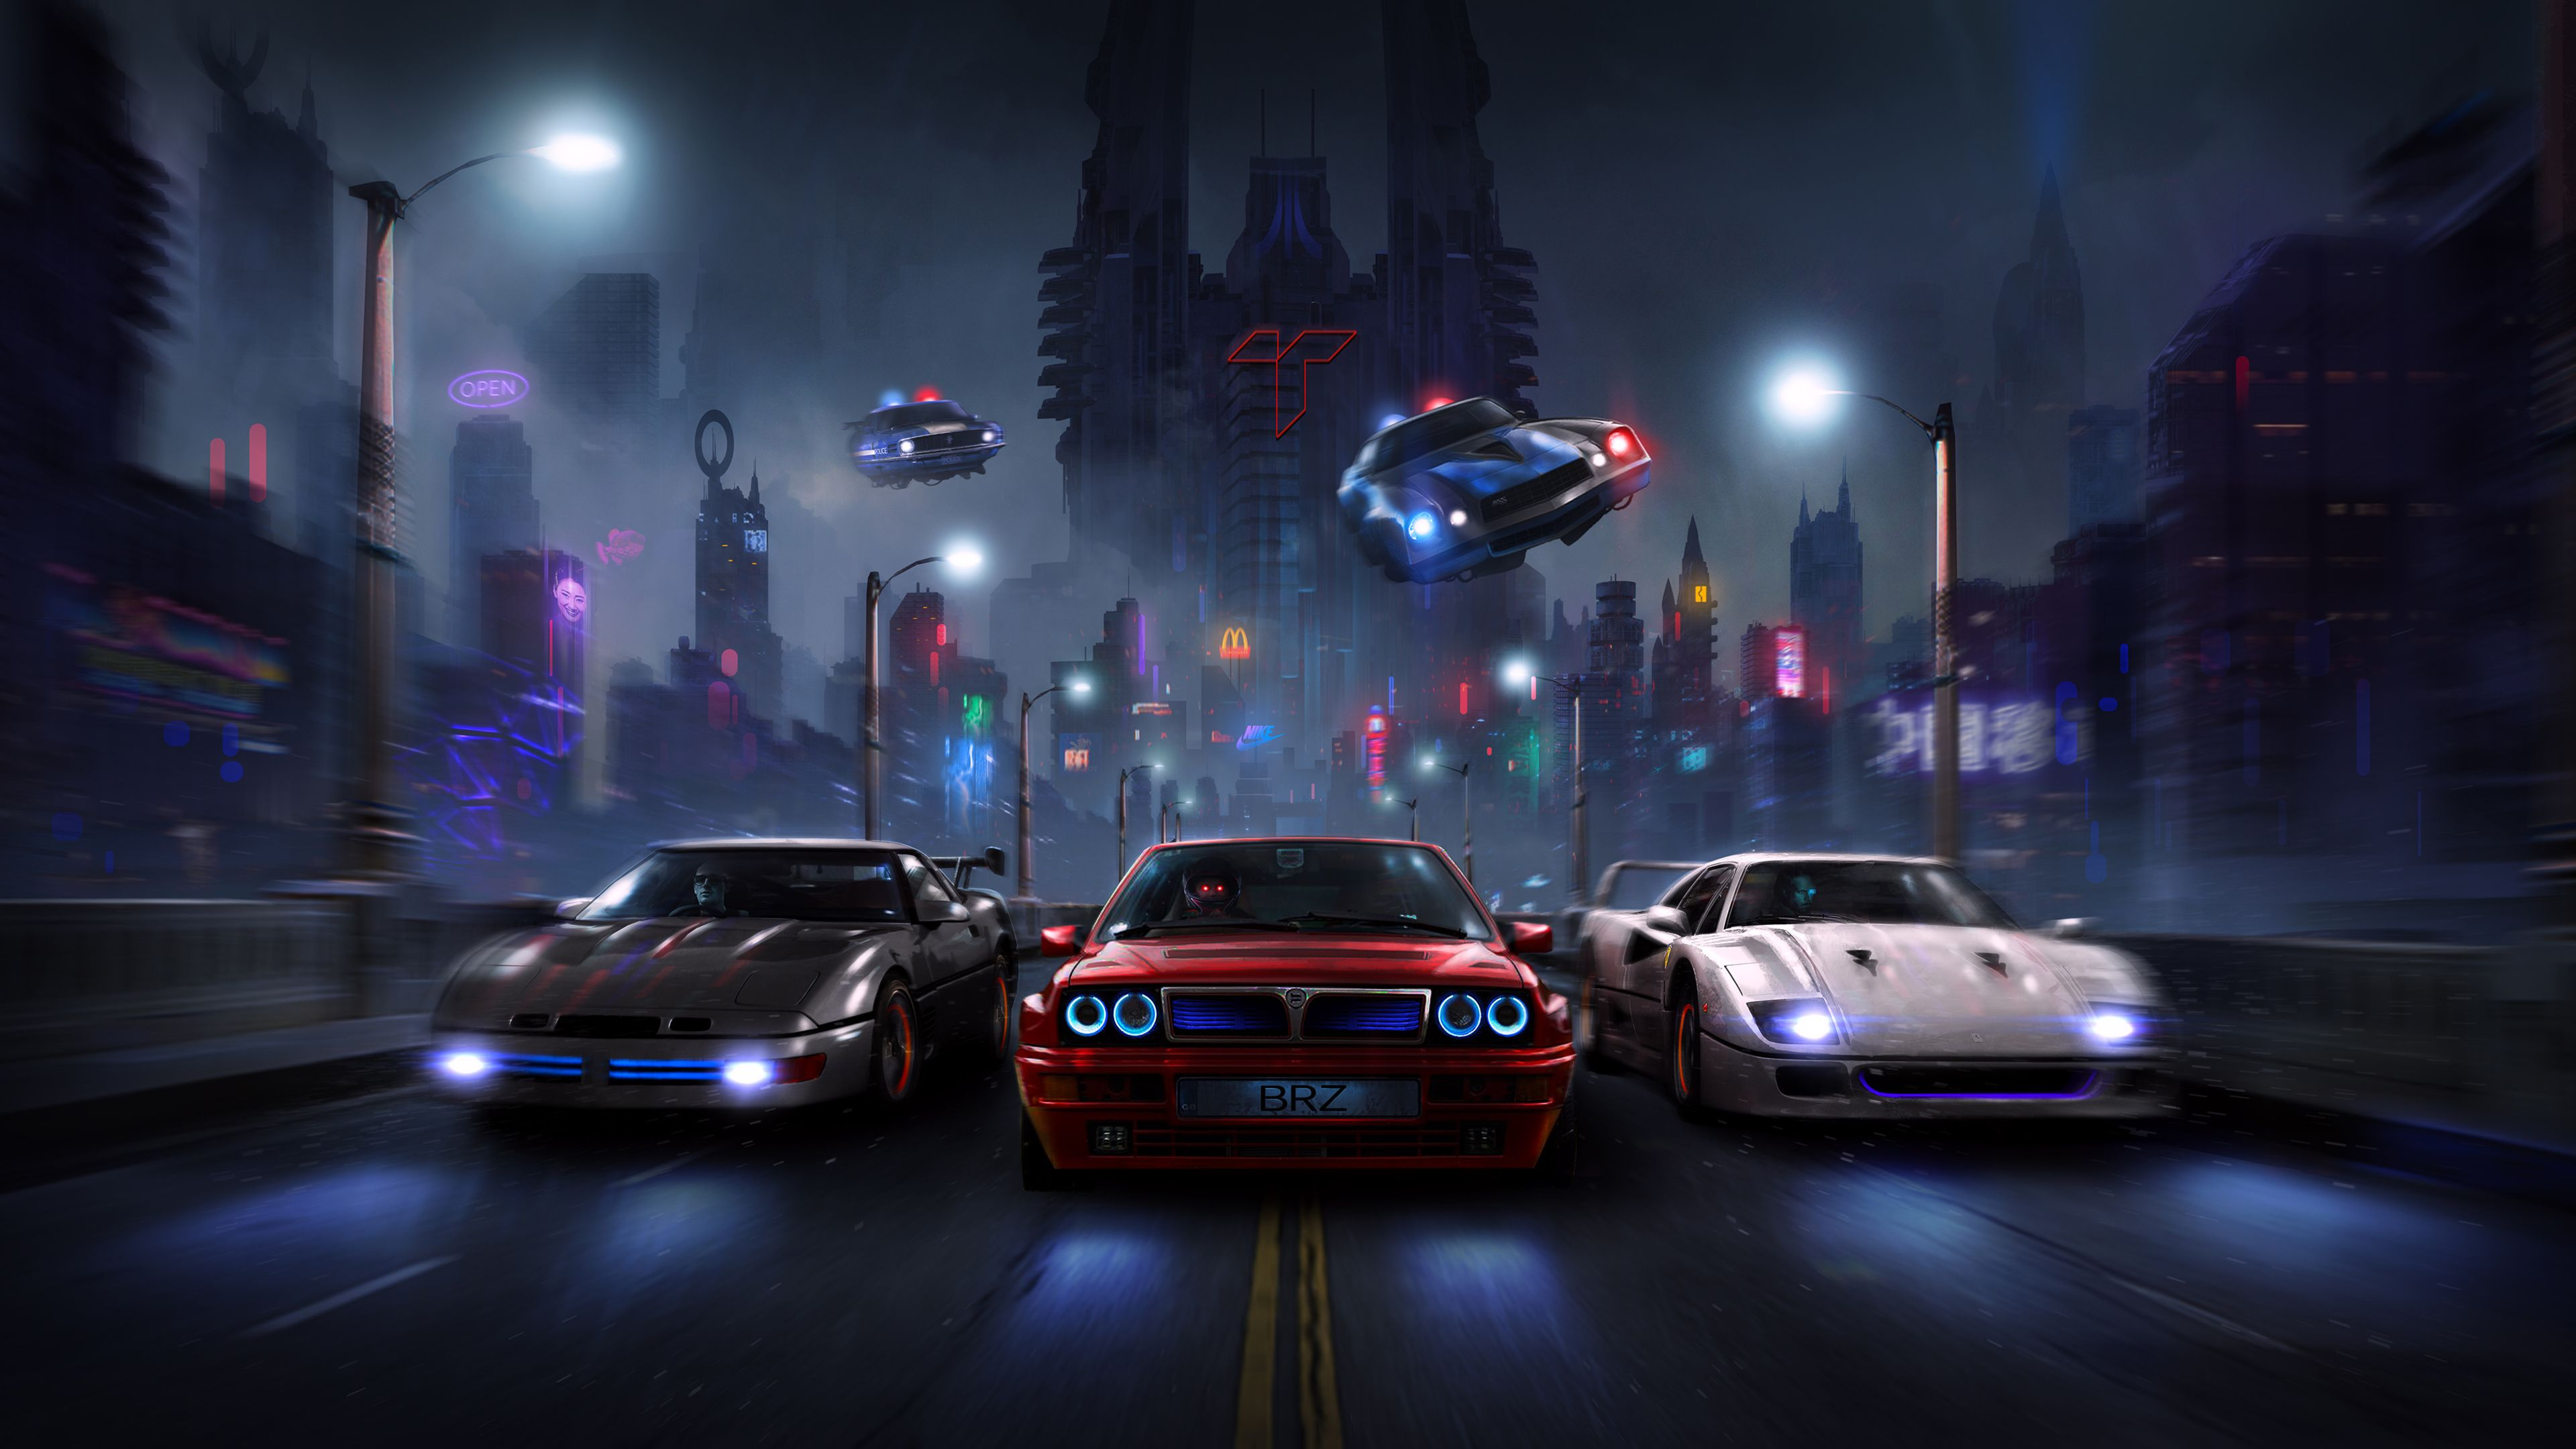 Racers Night Chase 4k Hd Wallpapers Digital Art Wallpapers Deviantart Wallpapers Cars Wallpapers Artwork Wallpapers A Car Wallpapers Art Wallpaper Artwork